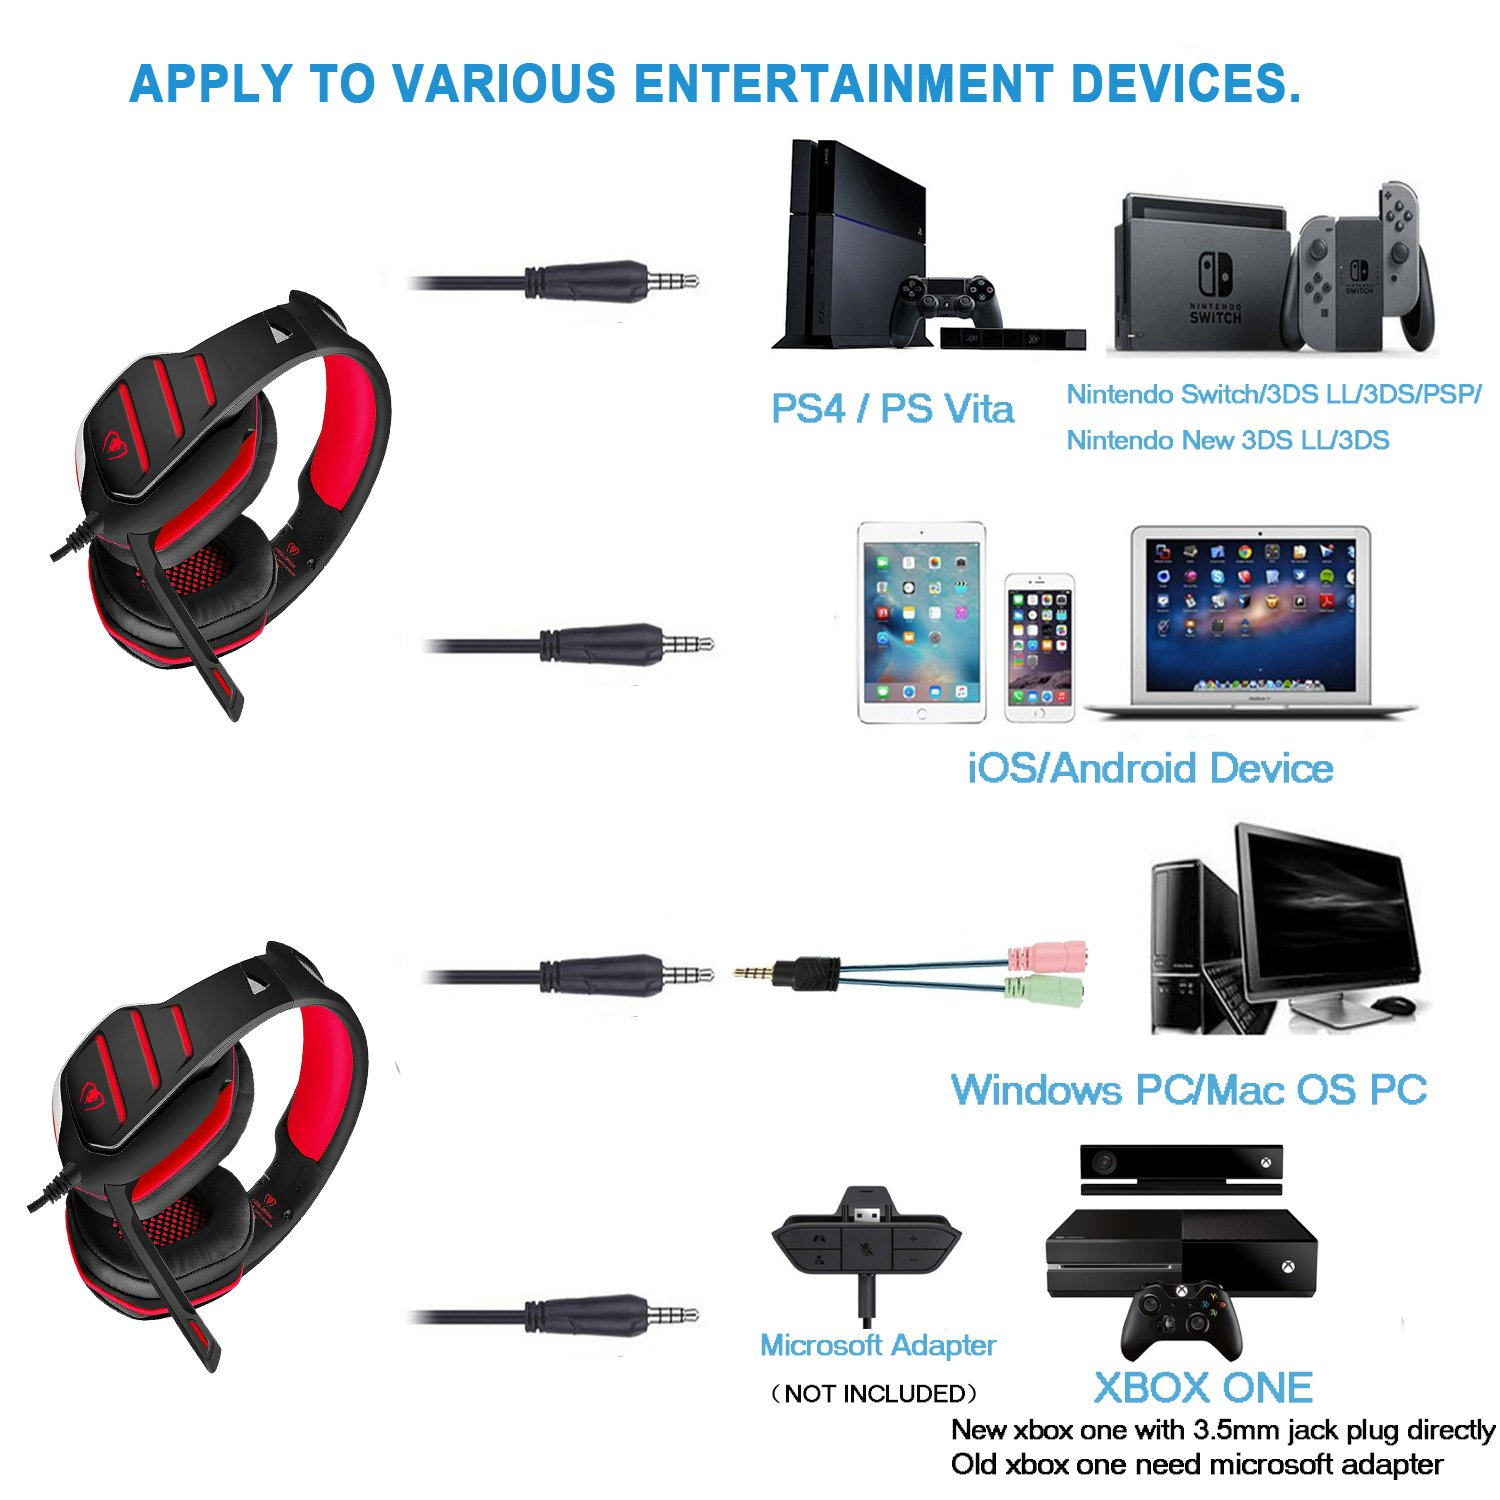 Gaming Headset for PS4, Beexcellent Xbox One Headset with Mic, Noise Cancelling Over Ear PS4 Headphones, Red Gaming Headphones with LED Light, Bass Surround, Soft Memory Earmuffs for Laptop, Mac, iPad B07DDGPFQP